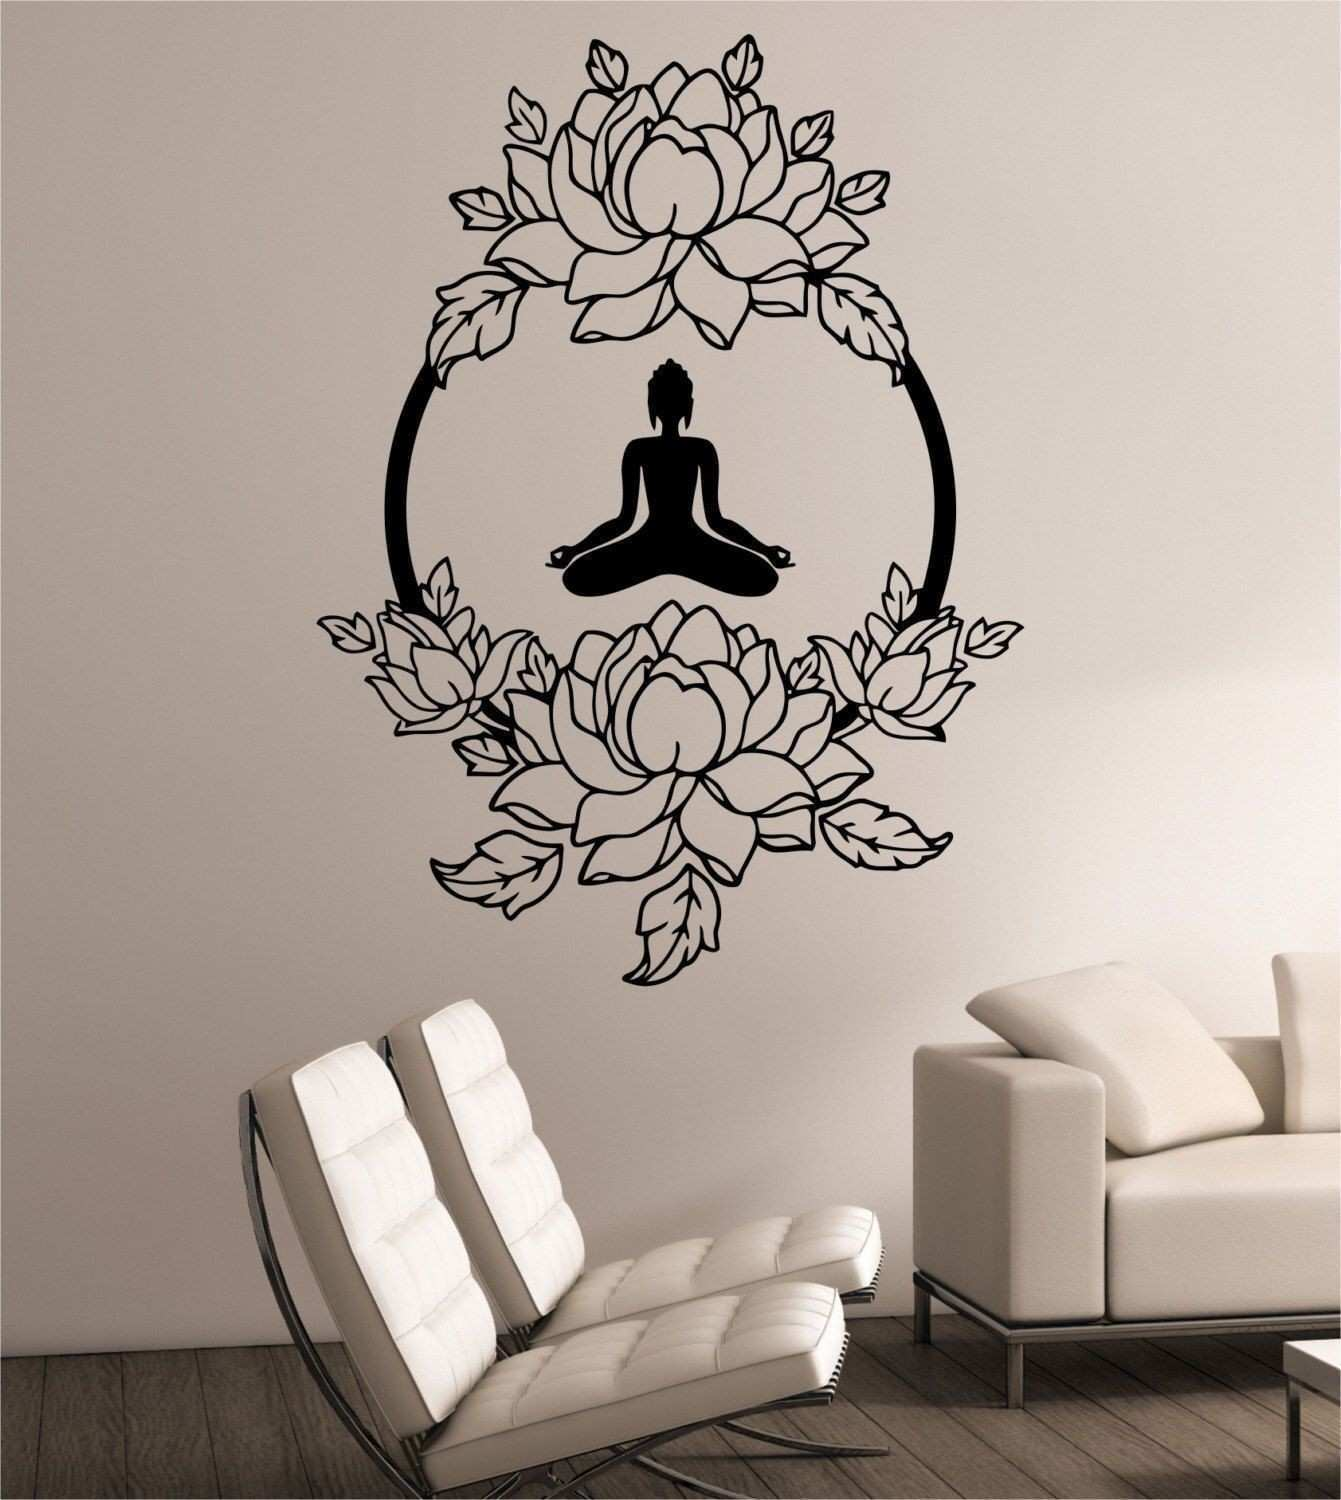 31 Lovely Abstract Wall Decals